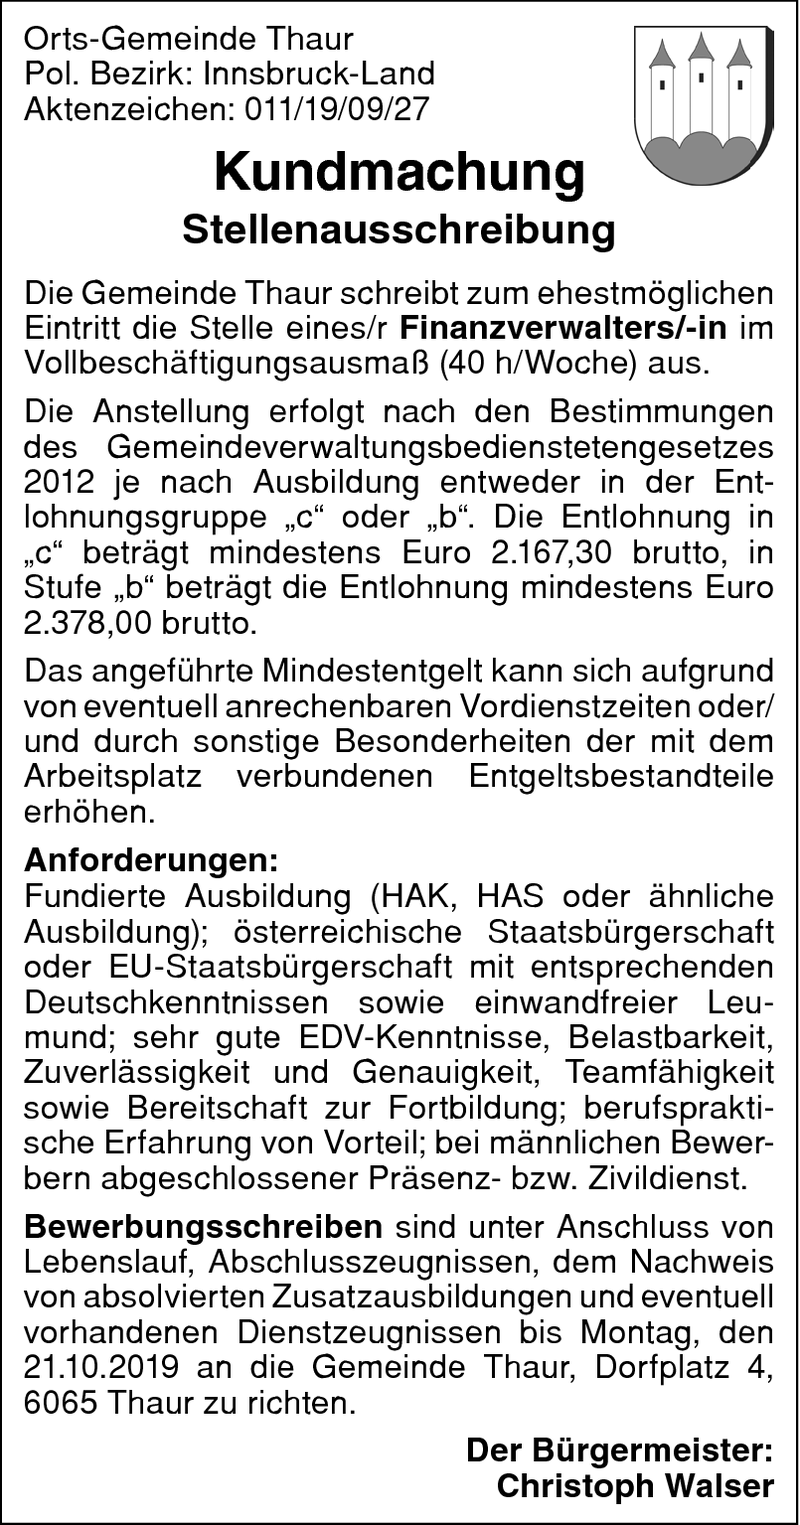 Finanzverwalter/in